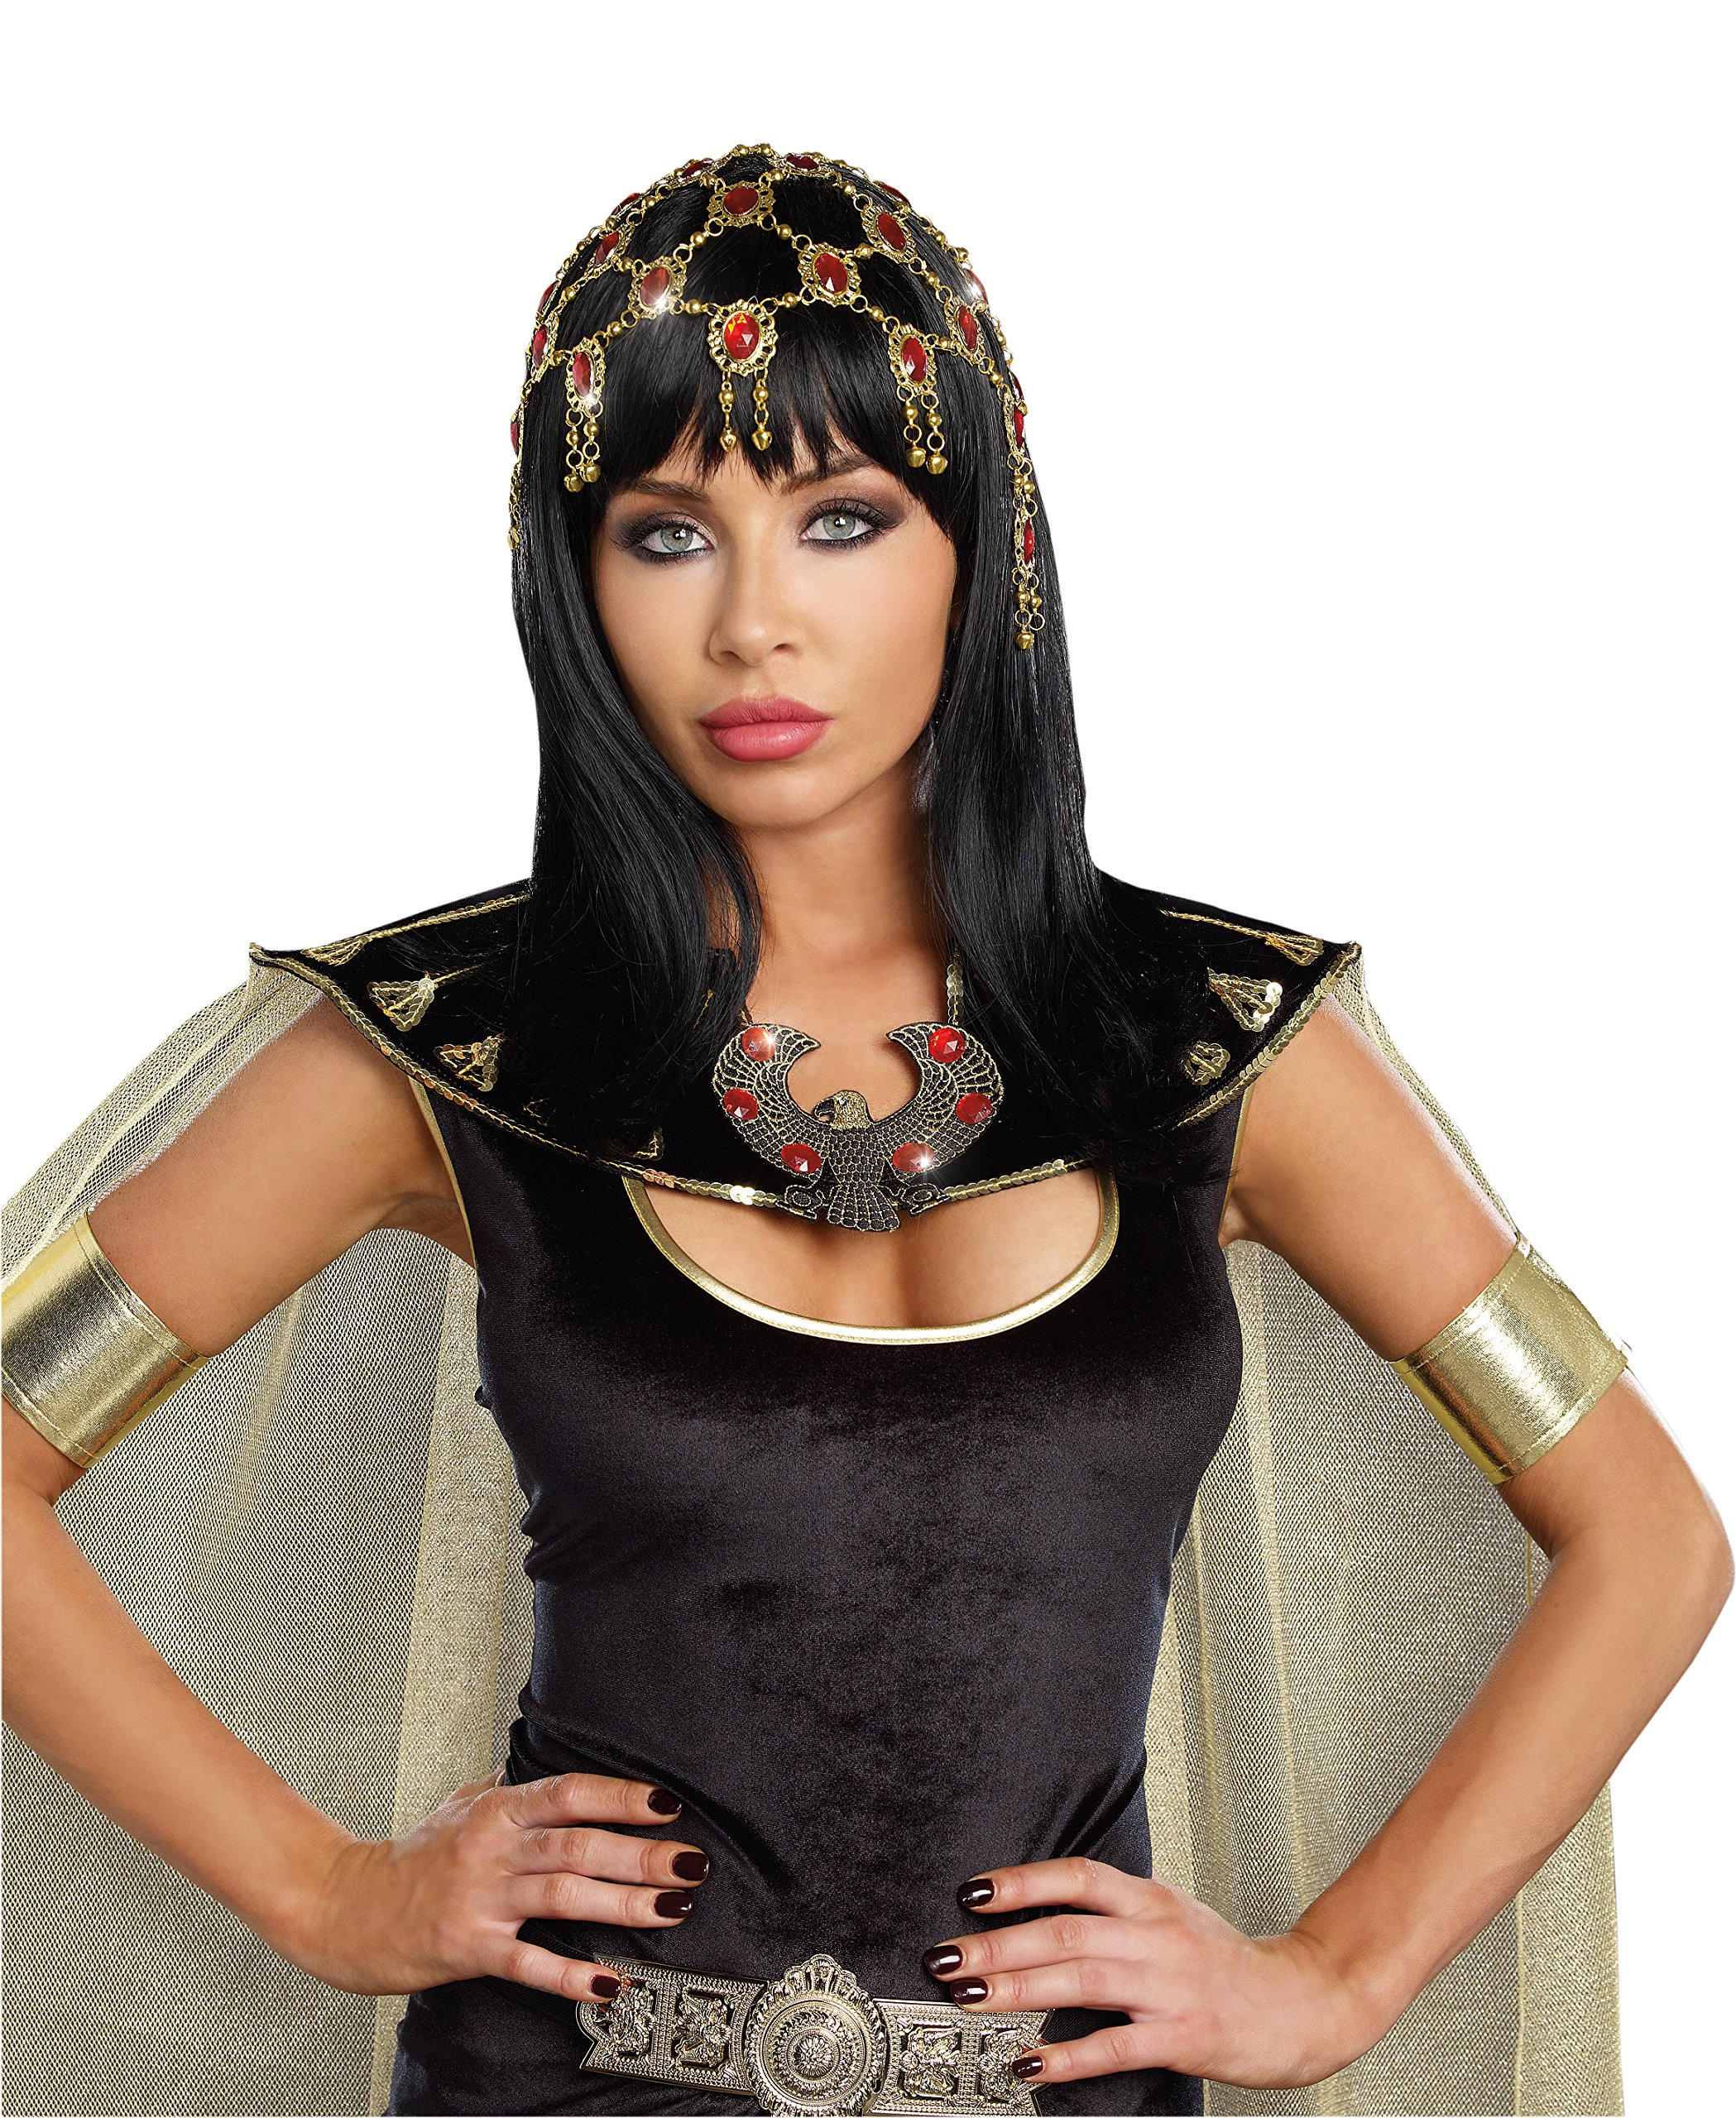 Dreamgirl Women's Sexy Costume Goddess Accessory, Dazzling Ruby Headpiece, Red/Gold, One Size